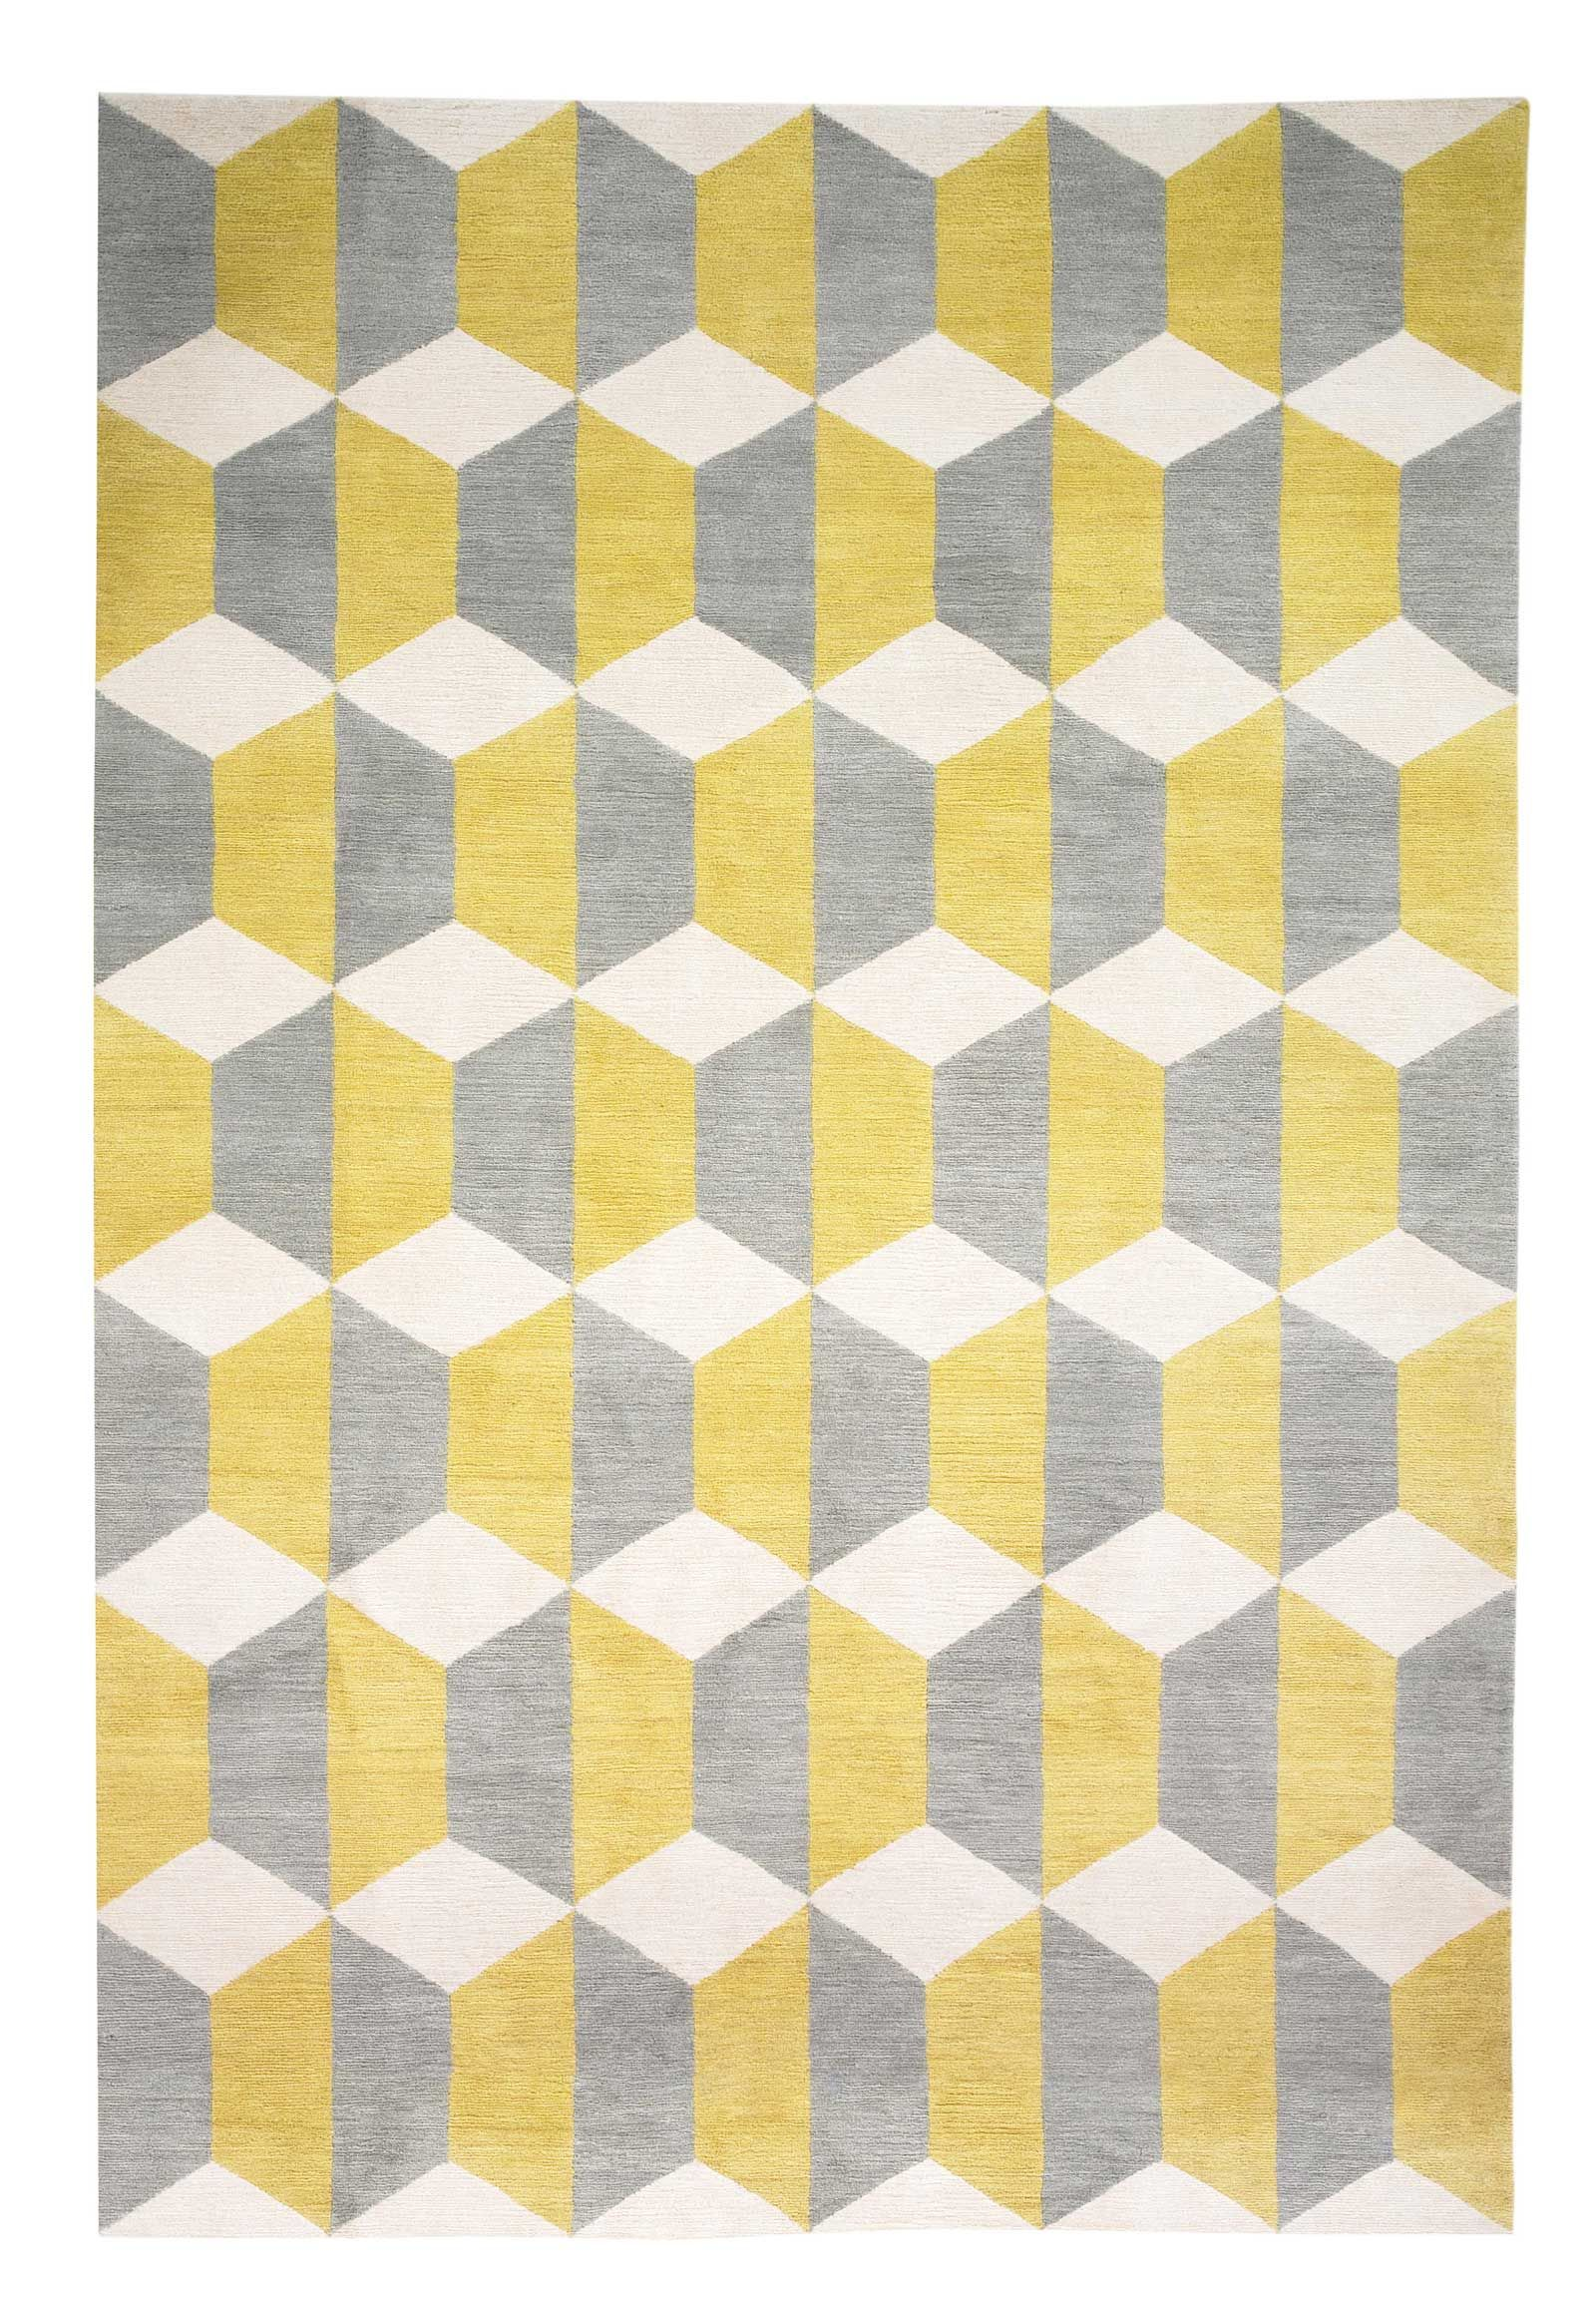 Chiesa Yellow By Suzanne Sharp Wool Contemporary Hand Knotted